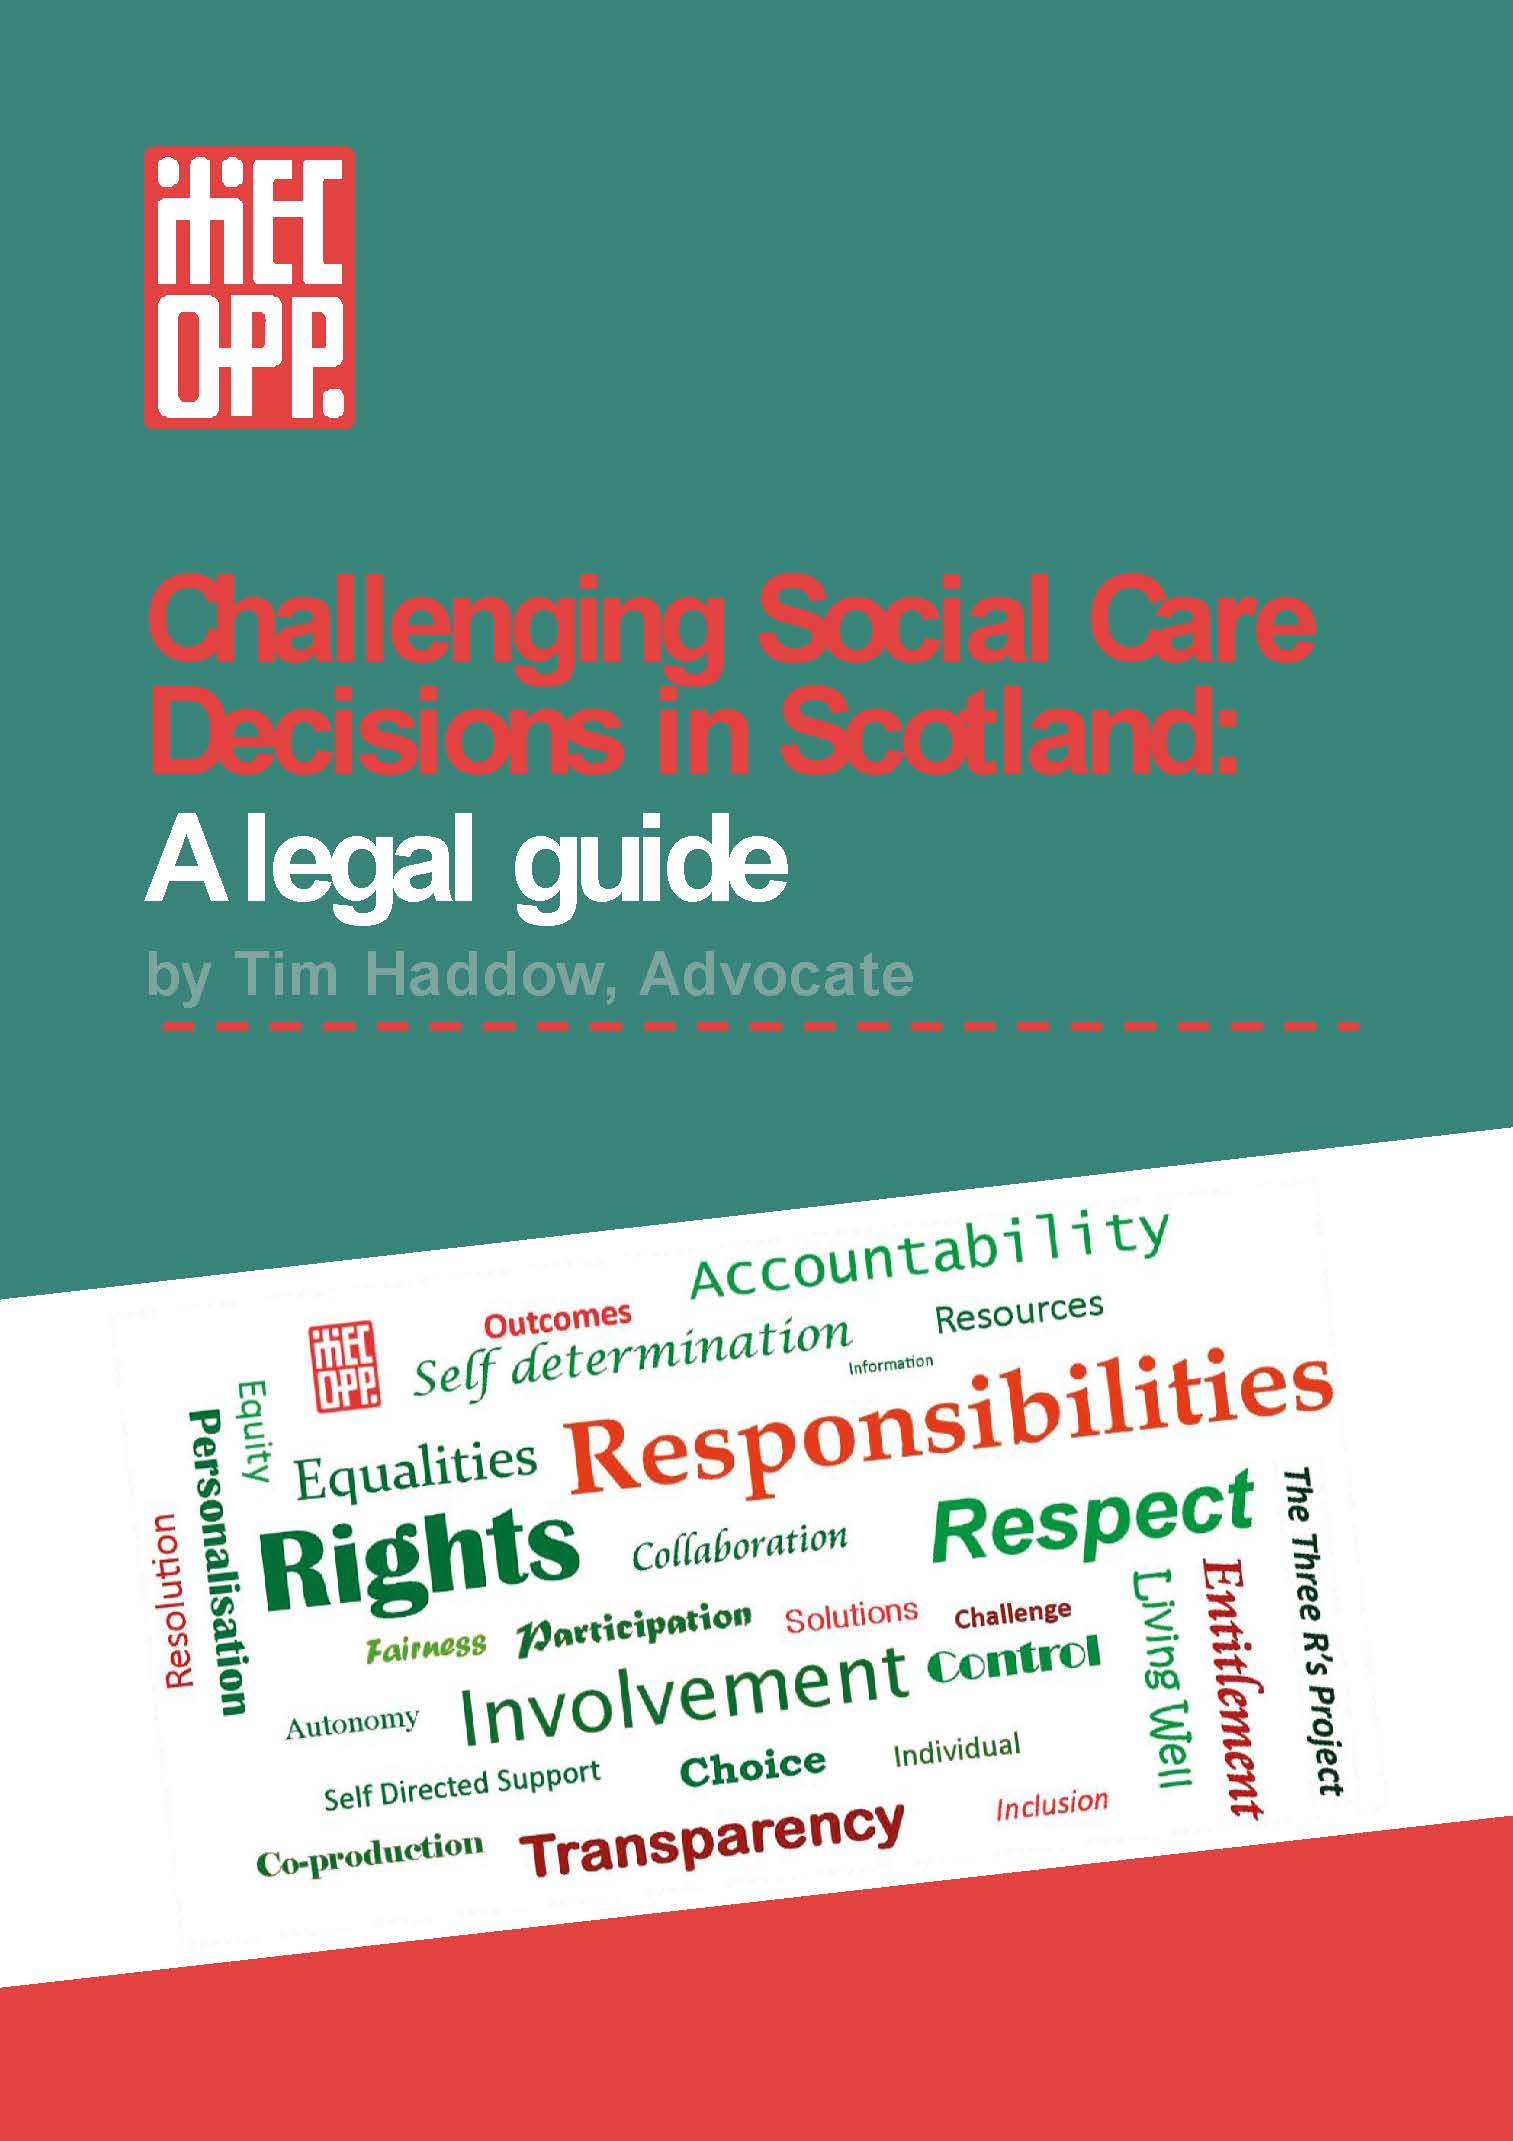 Challenging Social Care Decisions in Scotland:  A legal guide